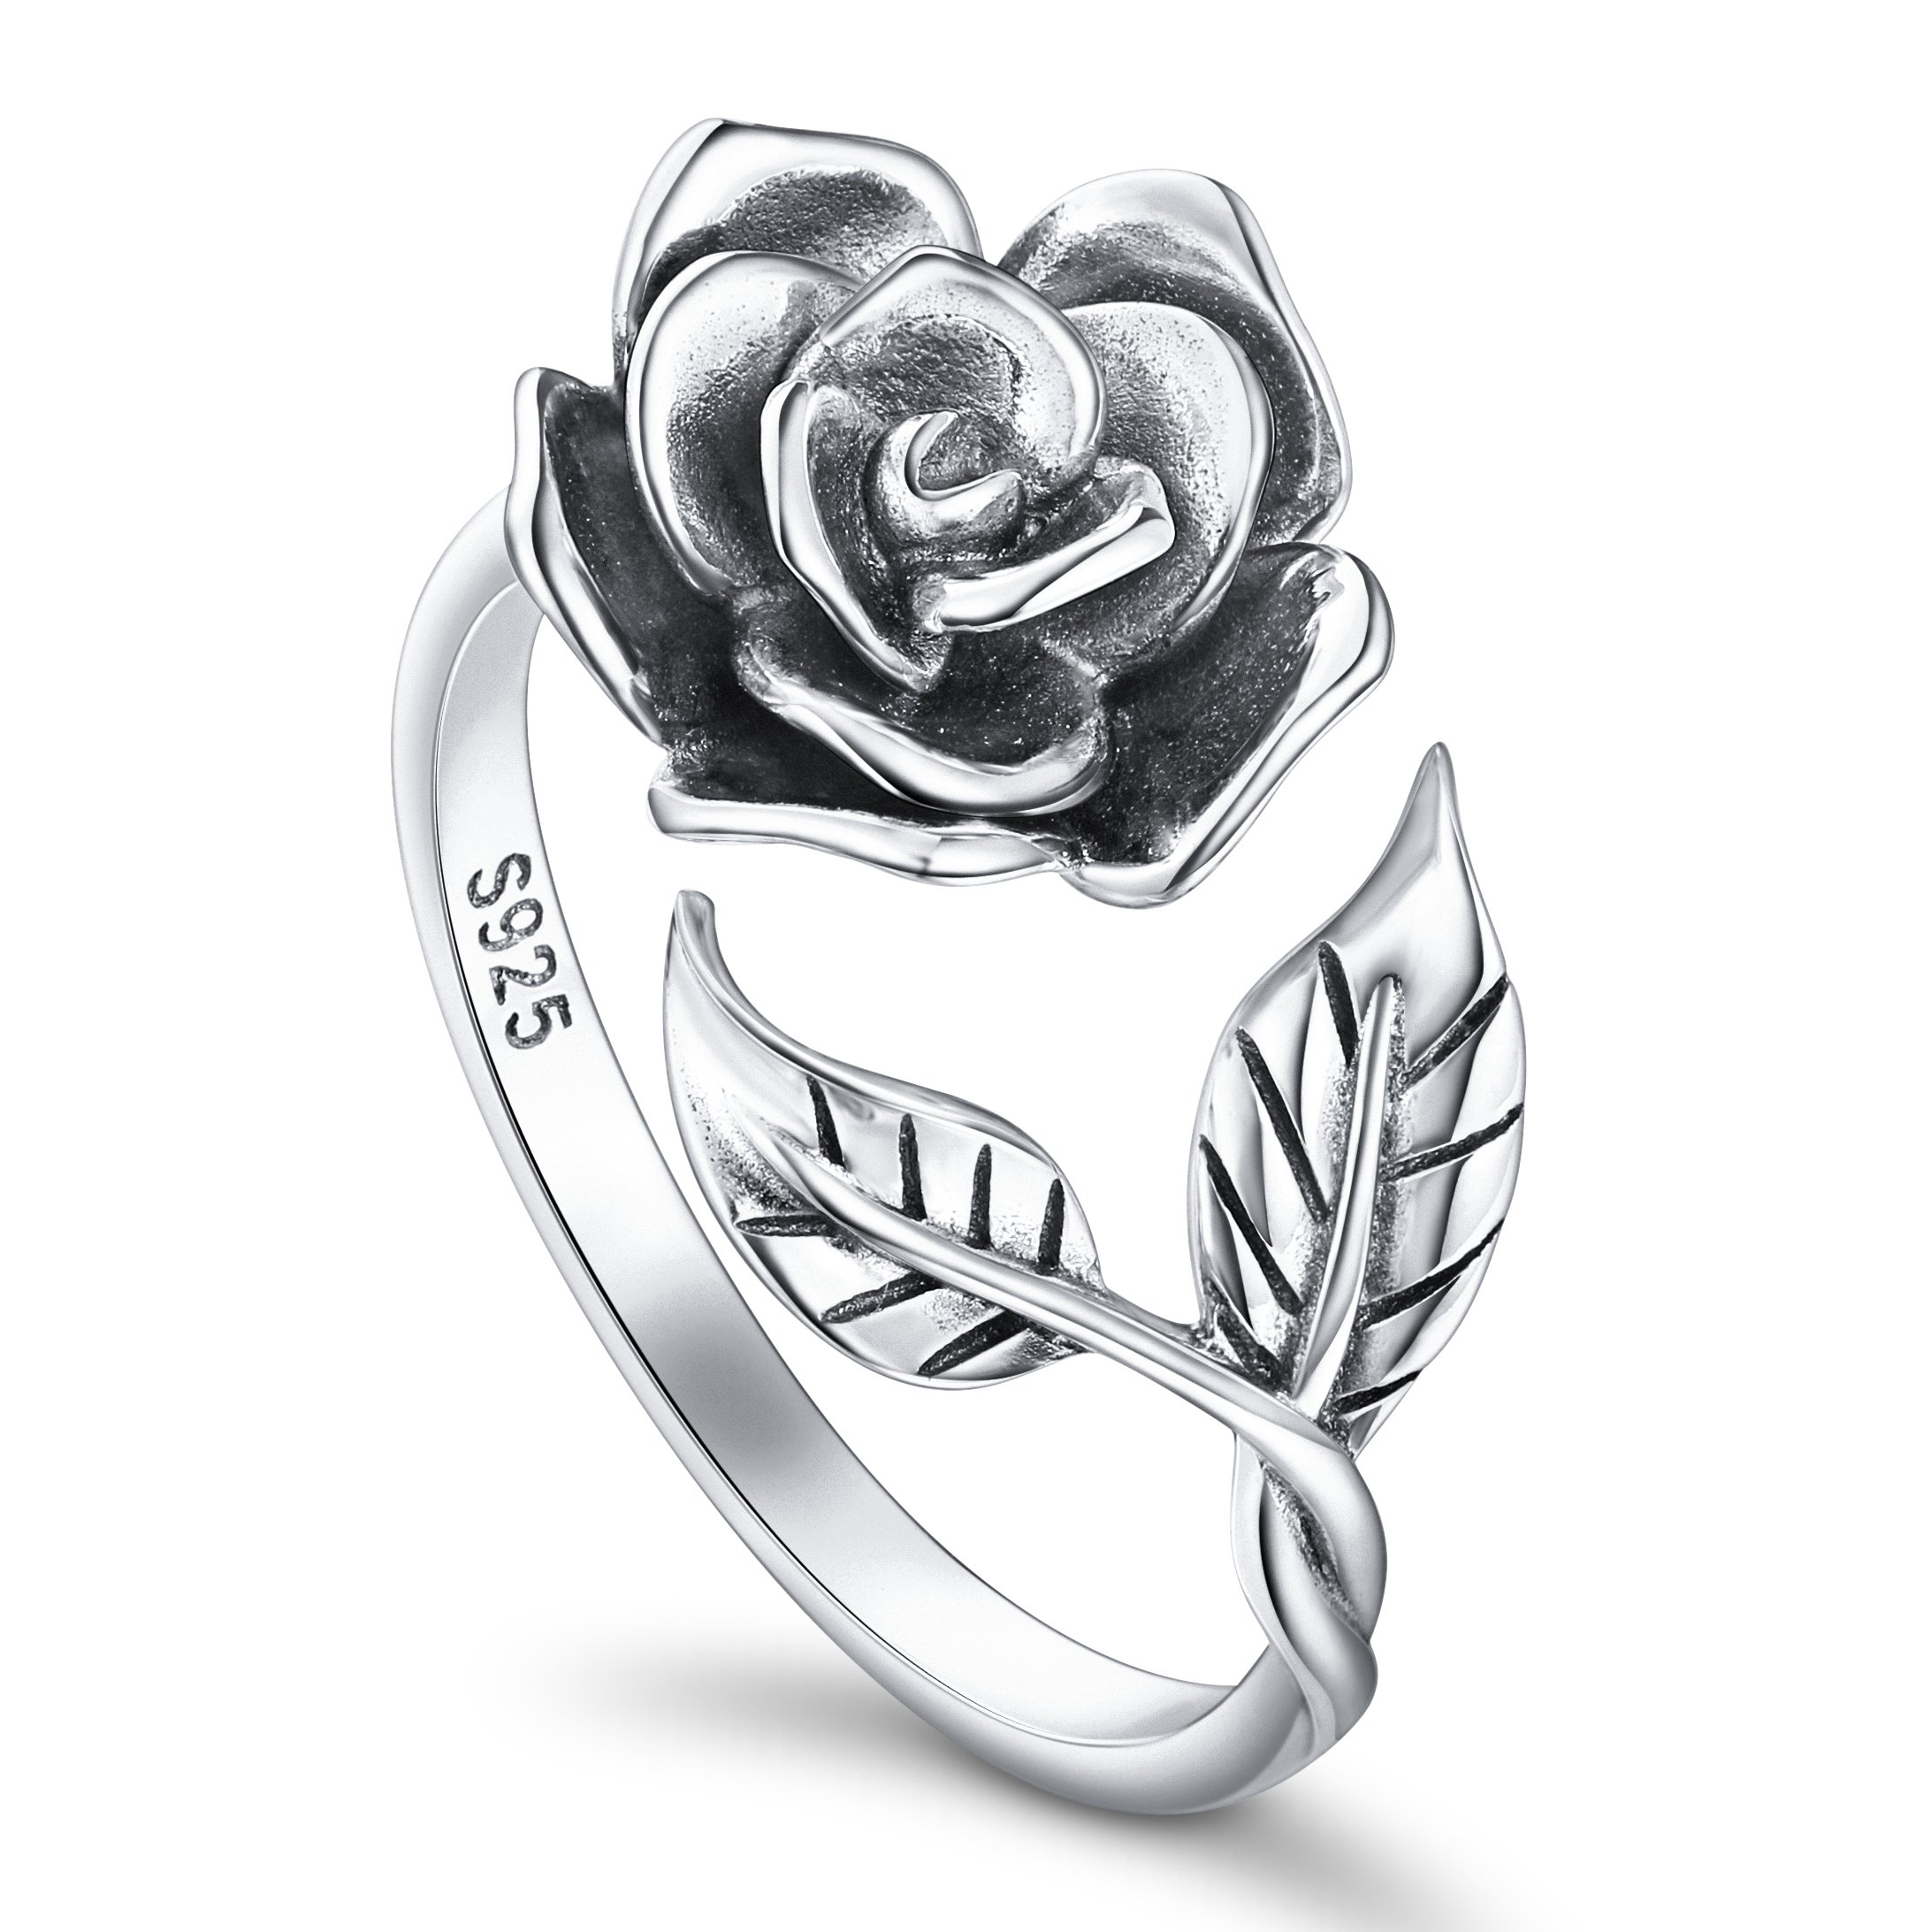 ALPHM Rose Flower Ring for Women S925 Oxidized Sterling Silver Adjustable Wrap Open Lotus Spoon Rings by ALPHM